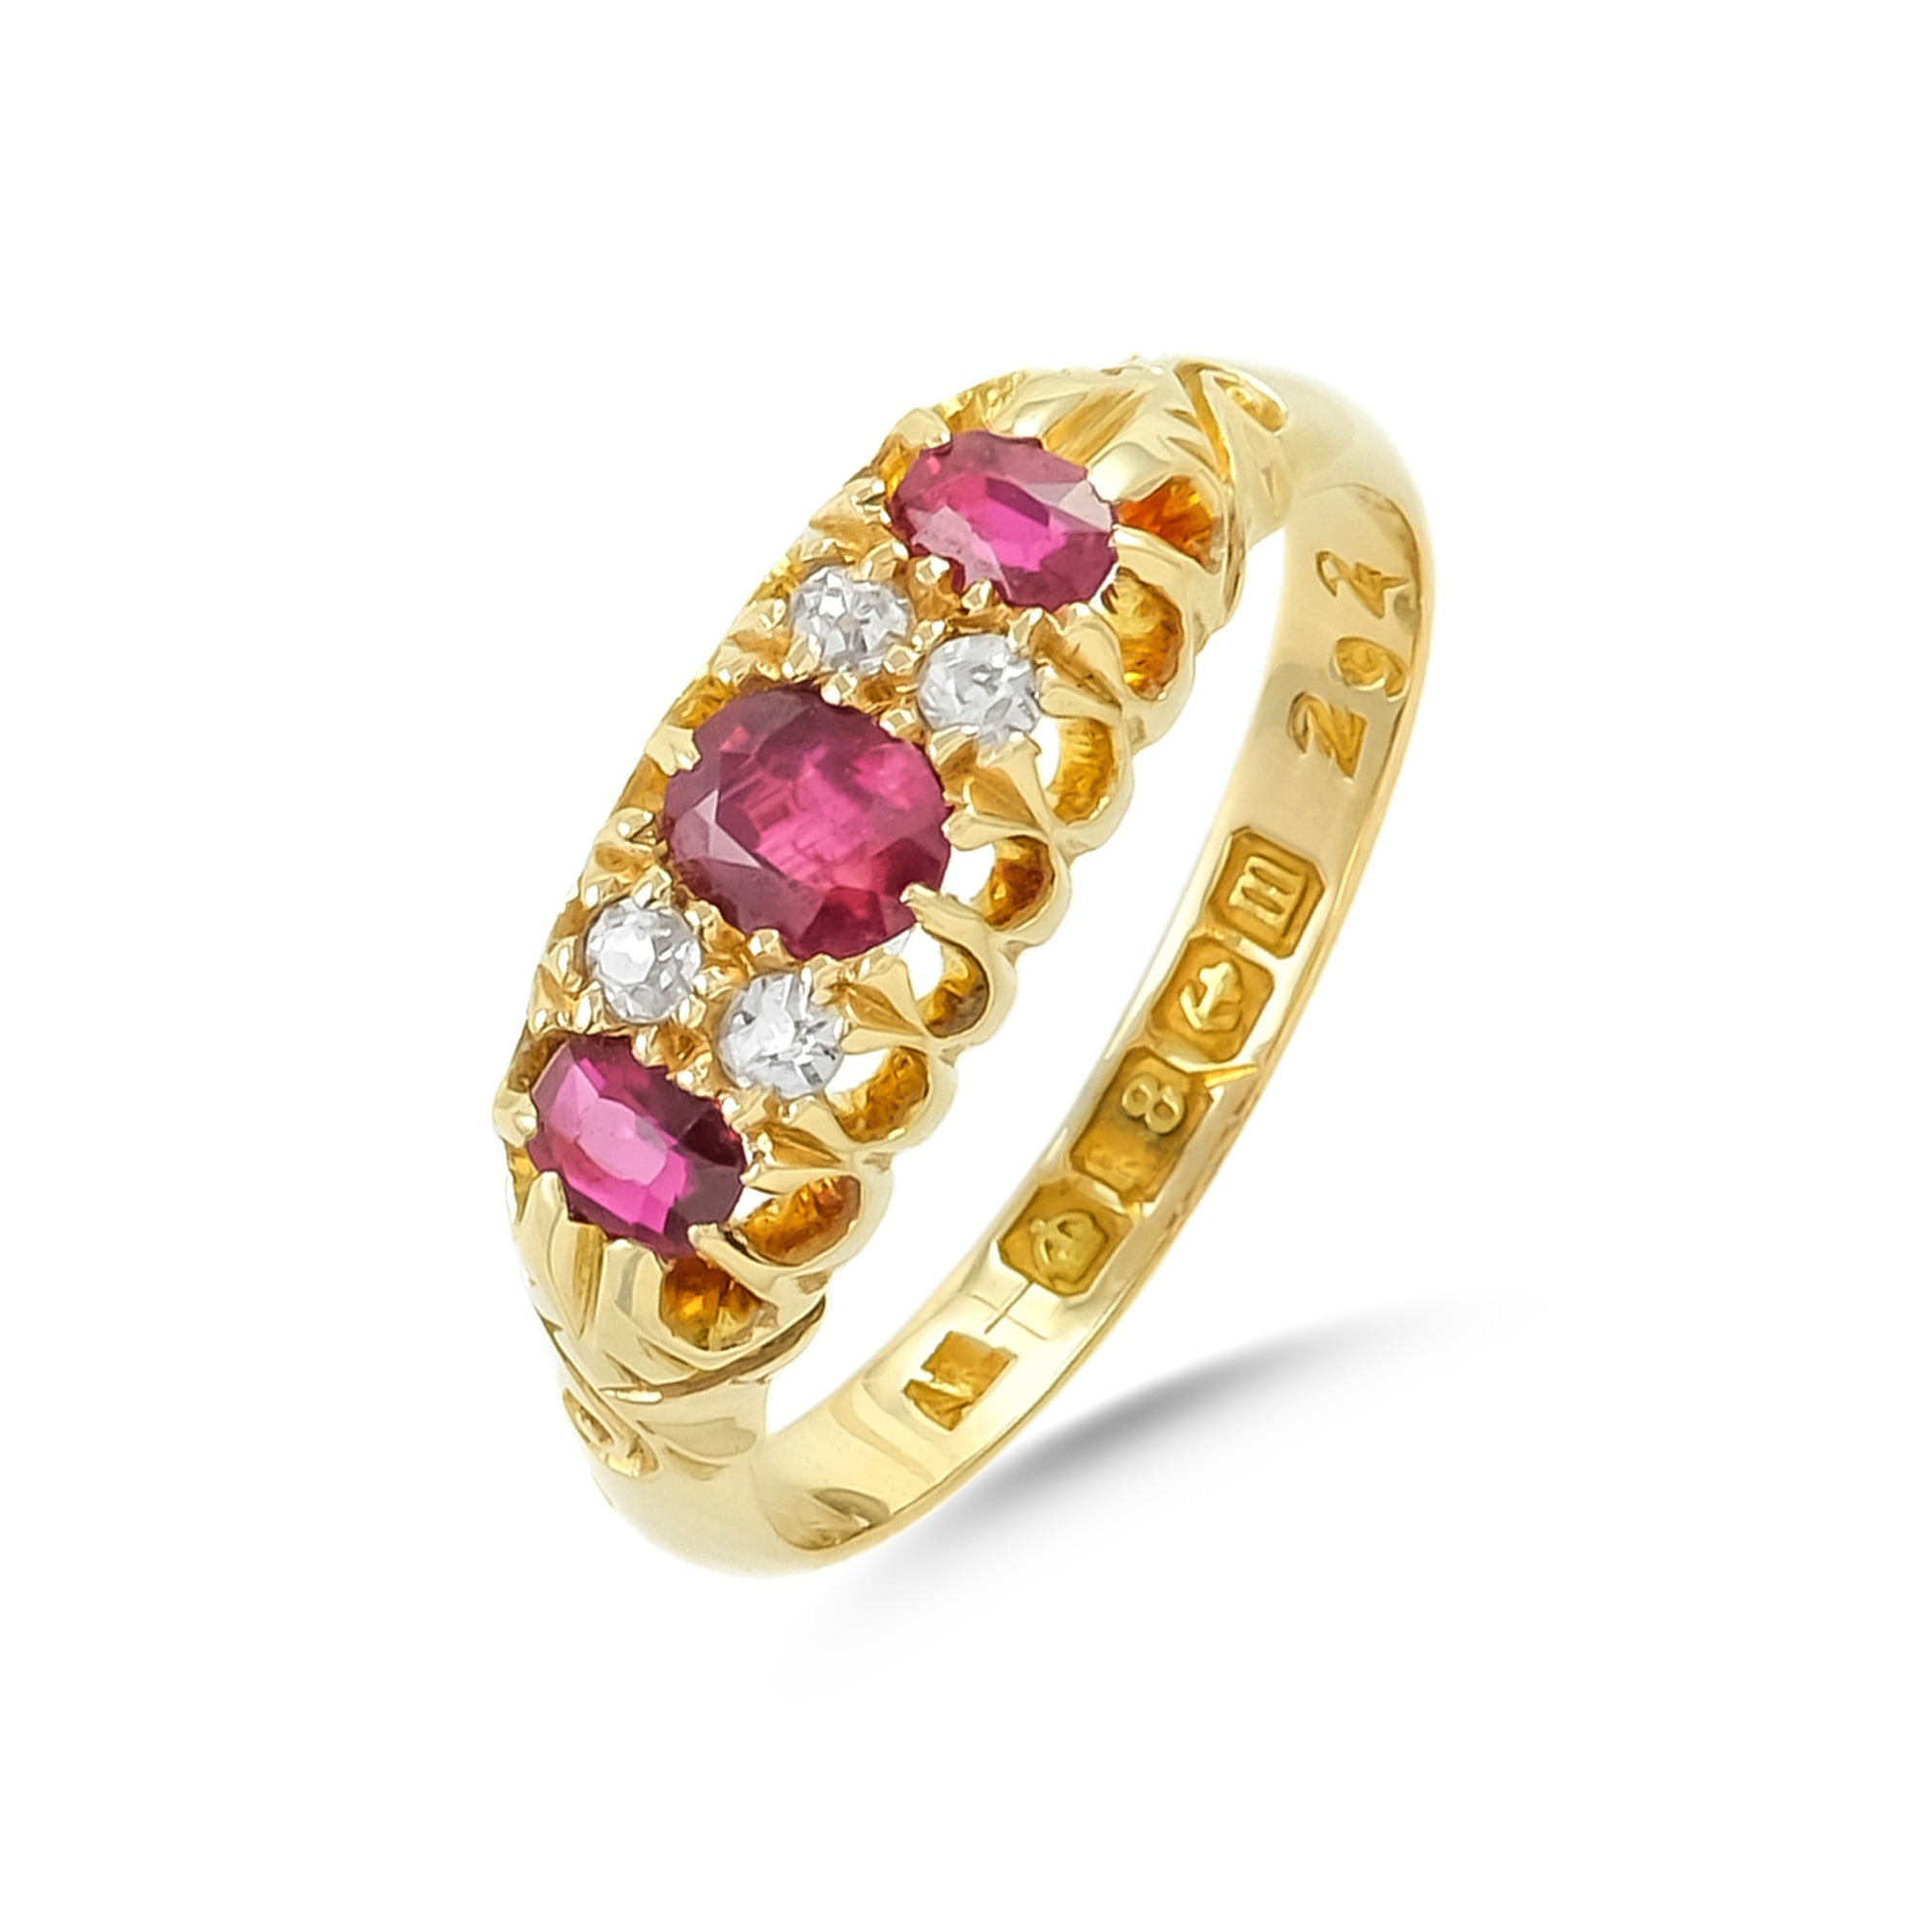 Vintage 9ct Yellow Gold Ruby and Diamond Ring